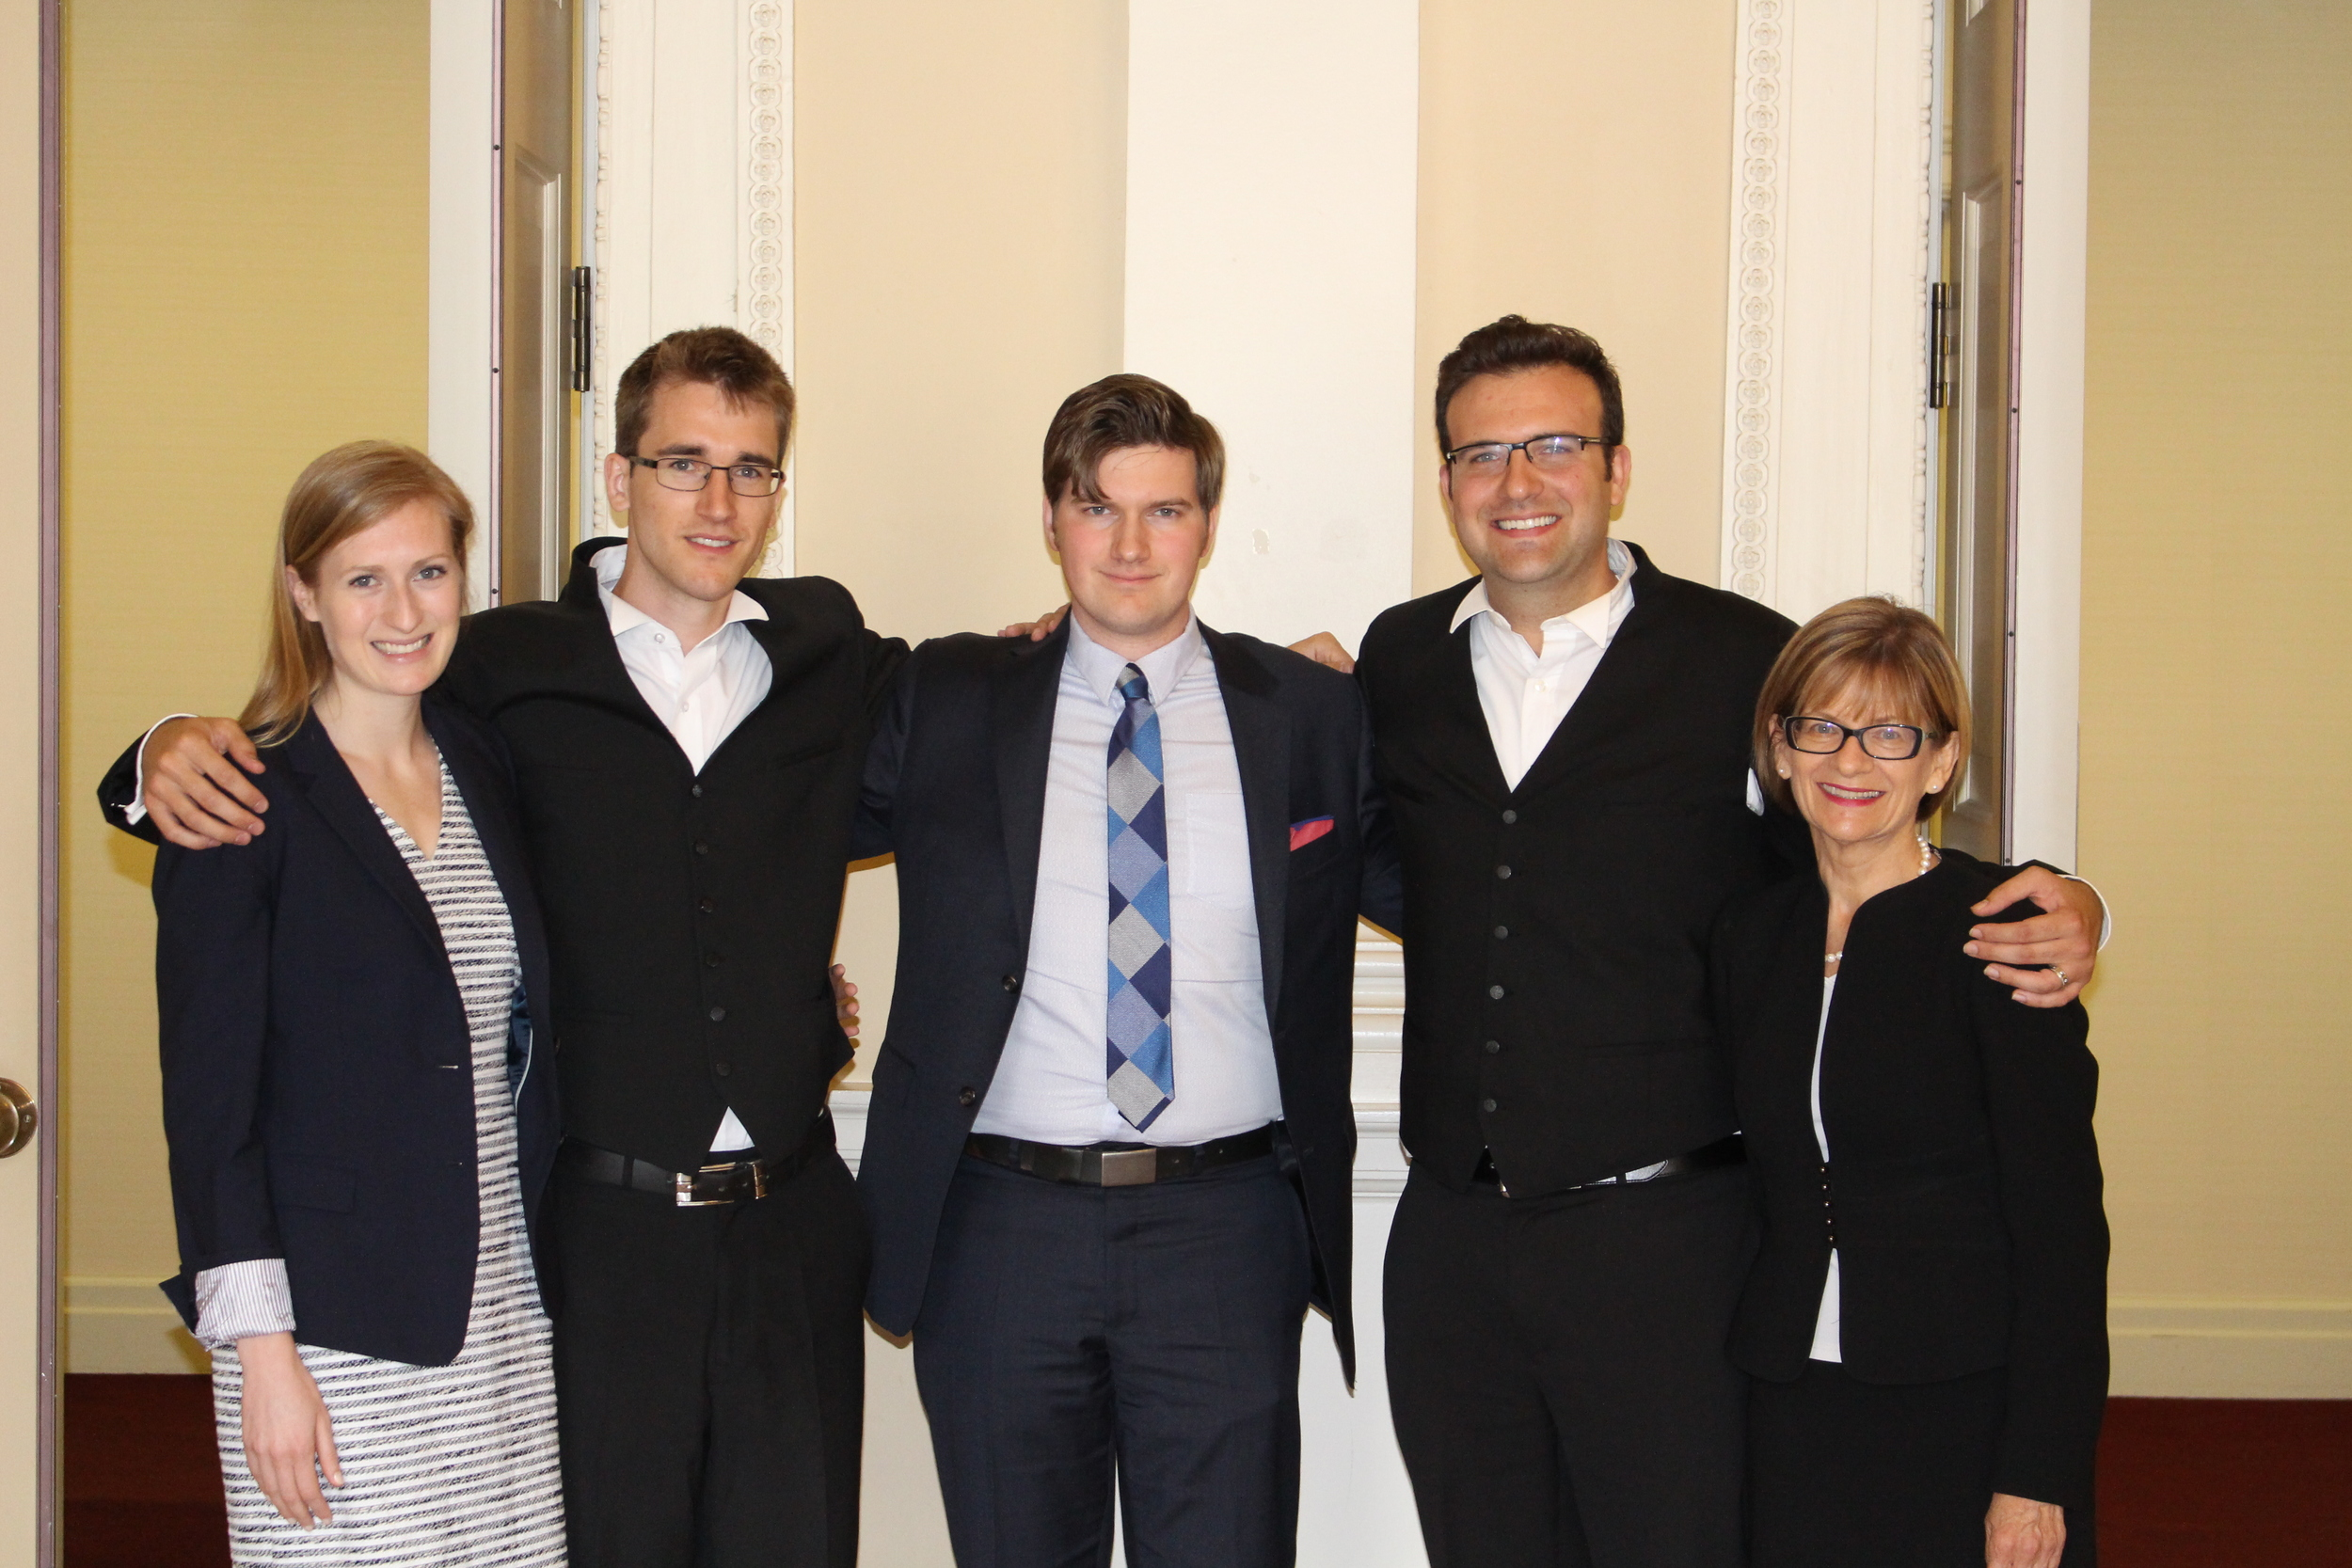 The Christian Legal Fellowship team at the Ontario Court of Appeal's hearing of TWU v. LSUC.